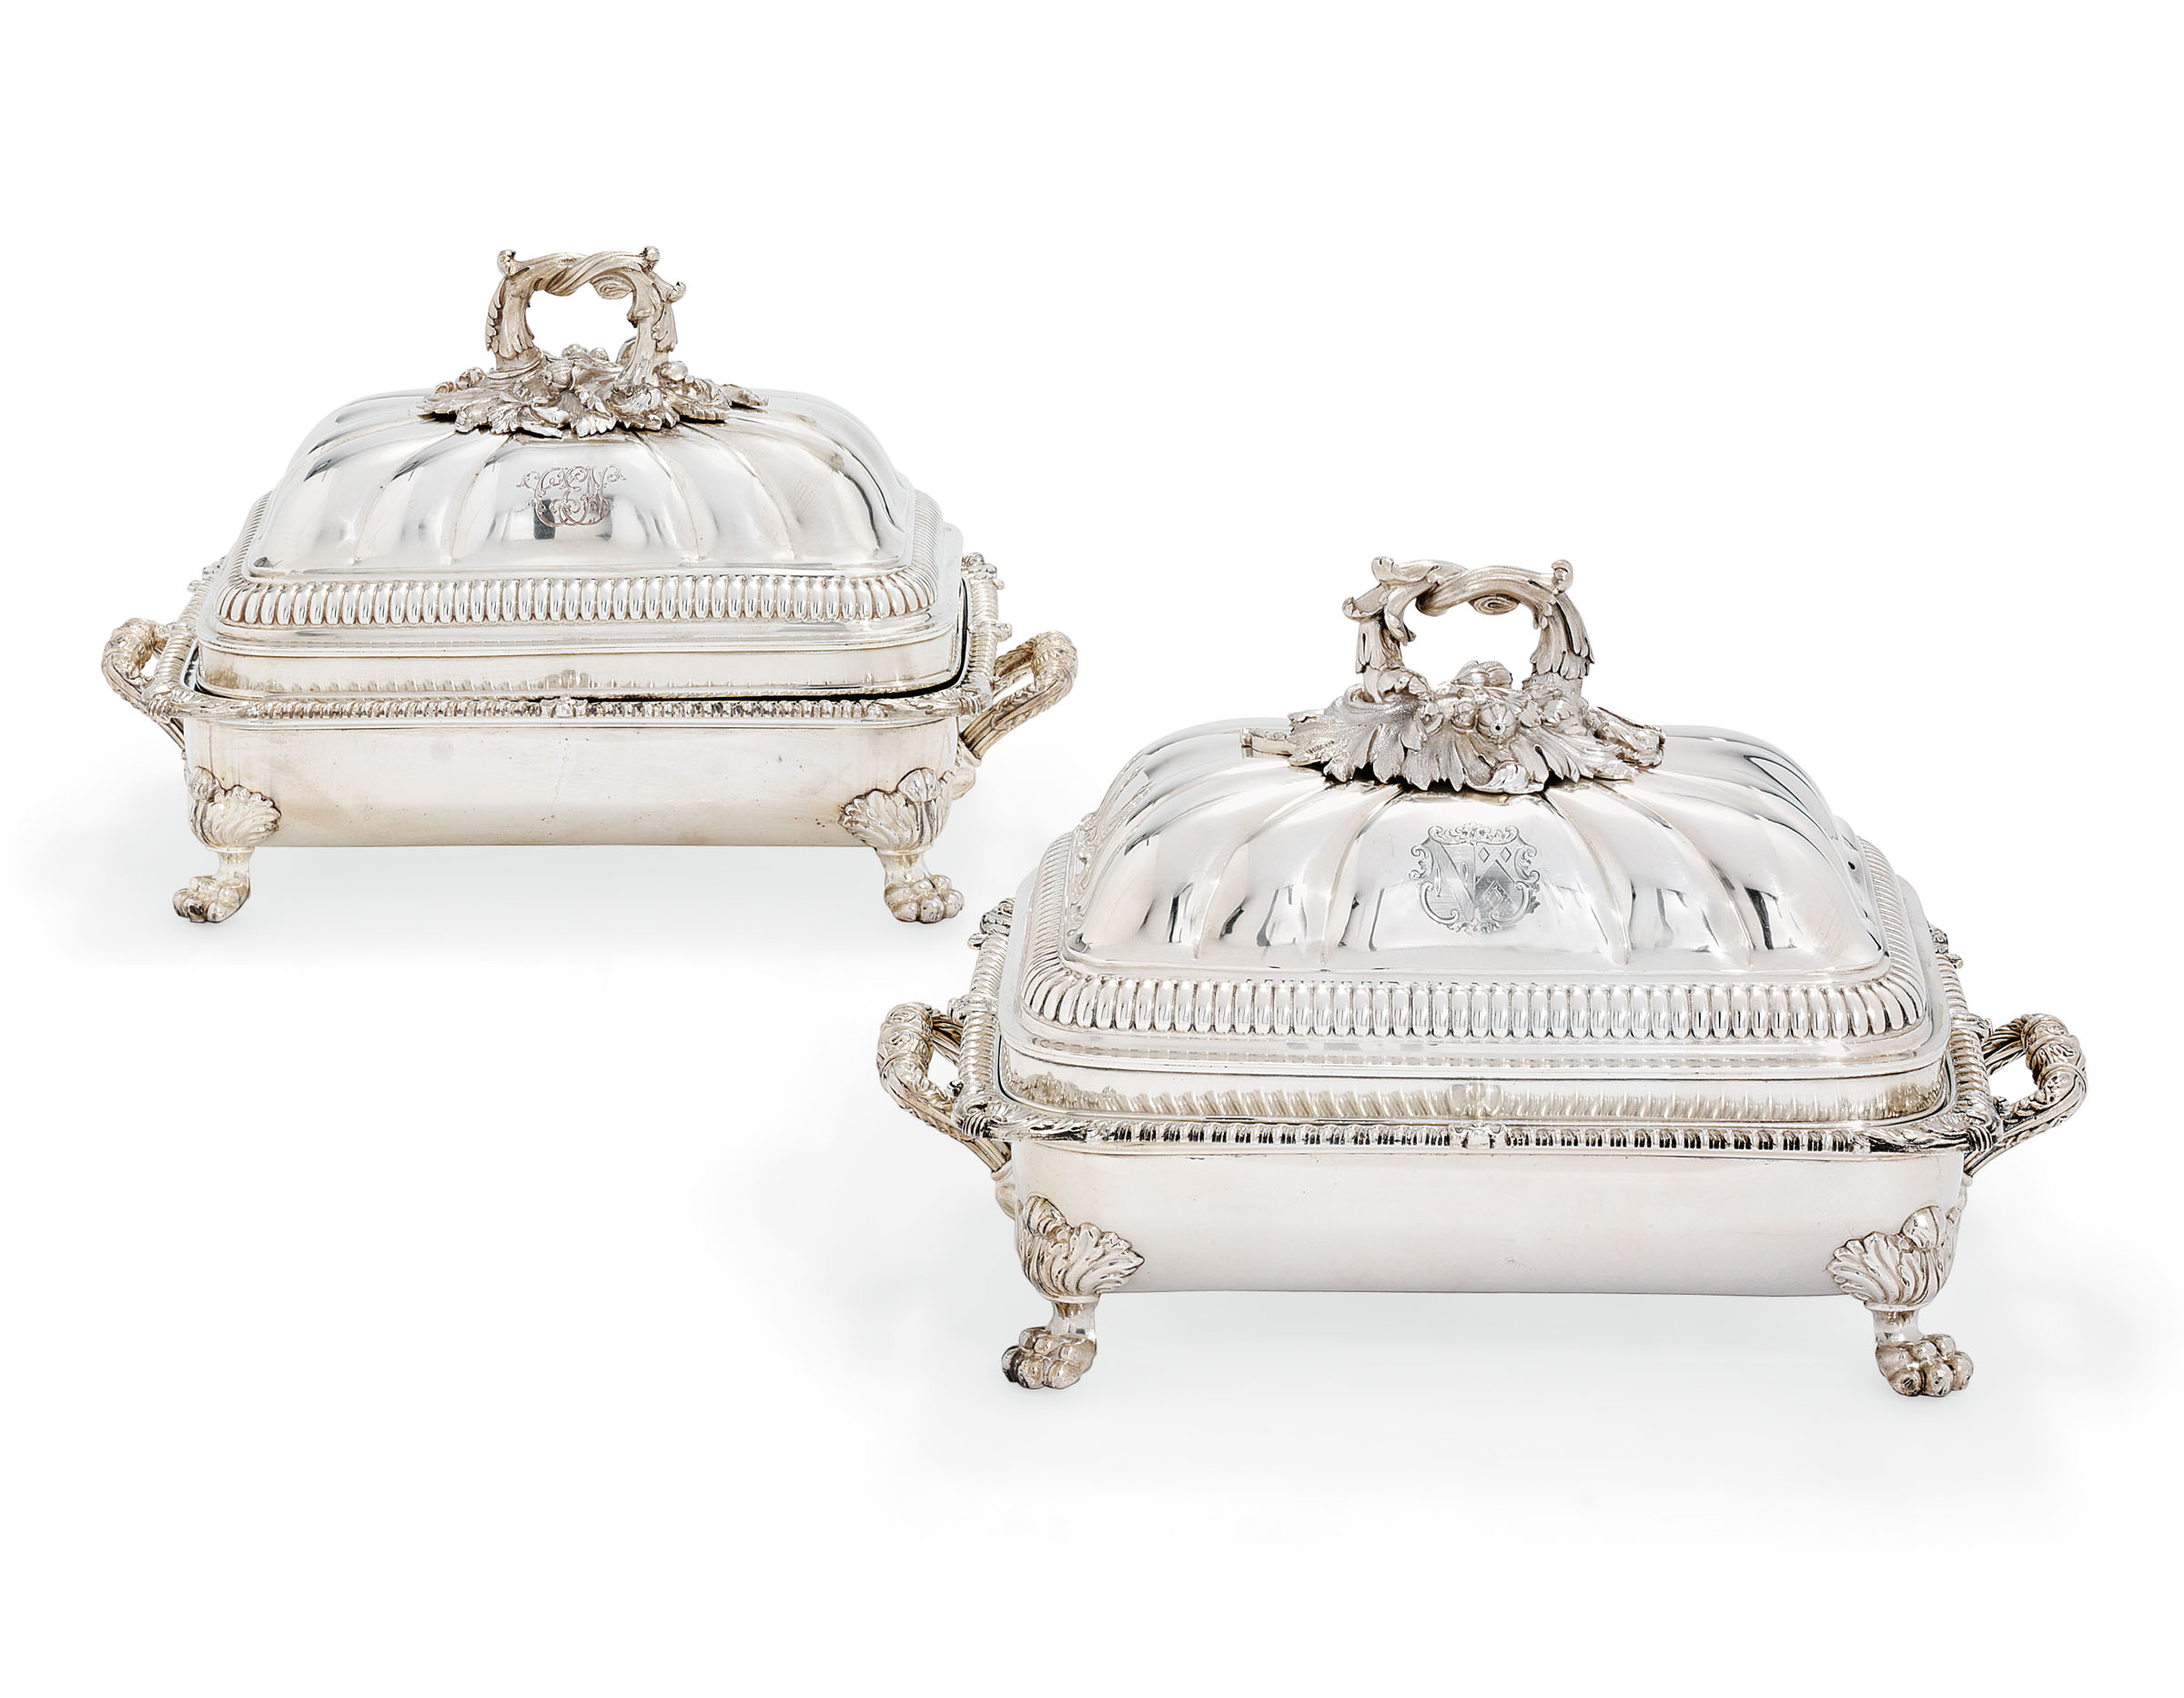 A PAIR OF GEORGE III SILVER ENTREE-DISHES AND COVERS ON OLD SHEFFIELD PLATED STANDS